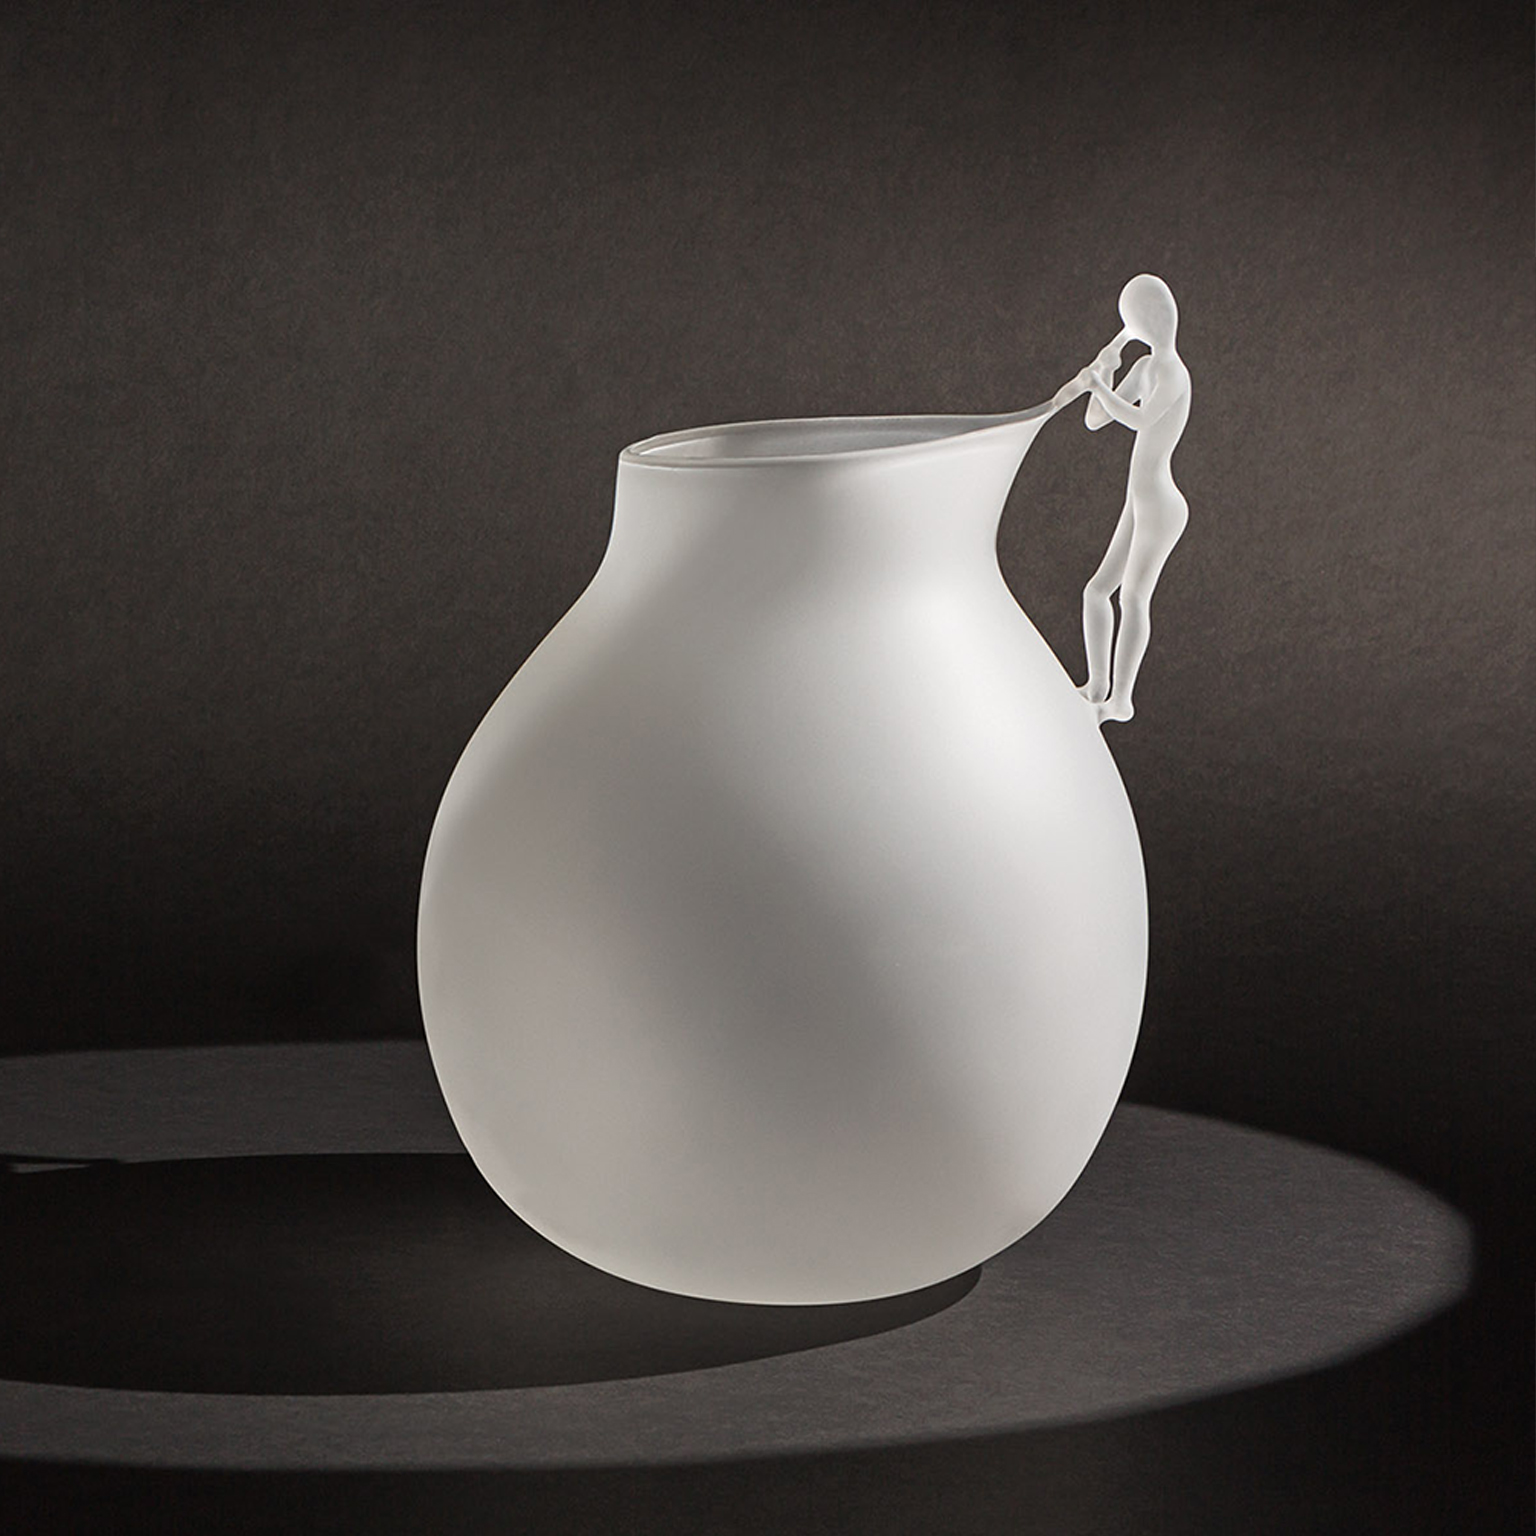 The Blowing Man Vase